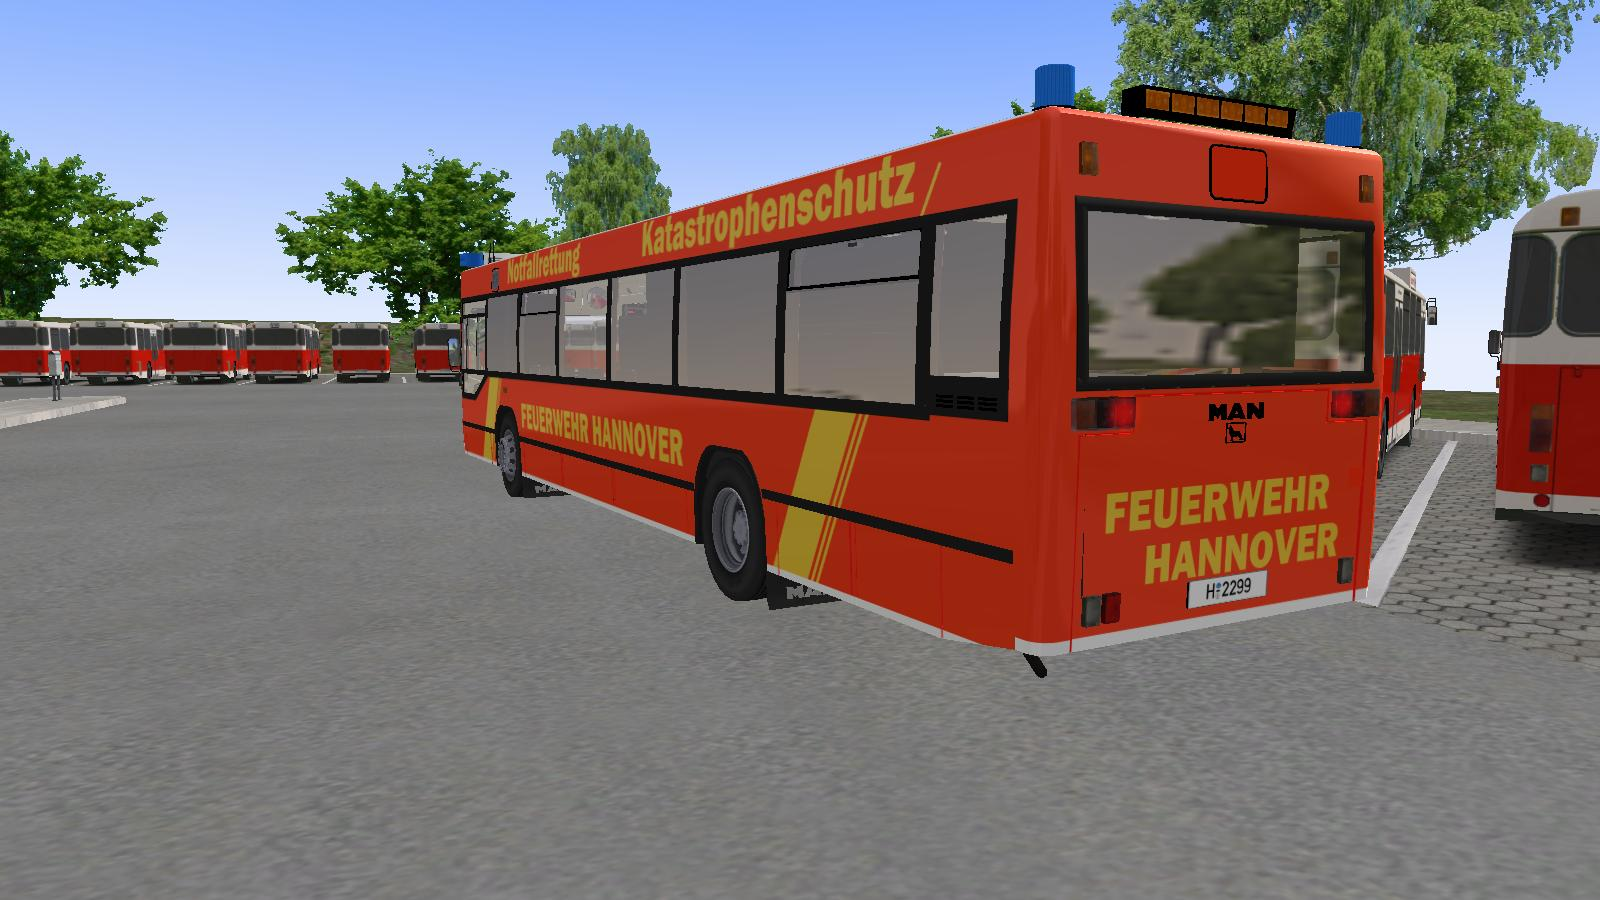 man nl202 elw2 feuerwehr hannover seite 4 neue busse new busses marcels omsi forum. Black Bedroom Furniture Sets. Home Design Ideas